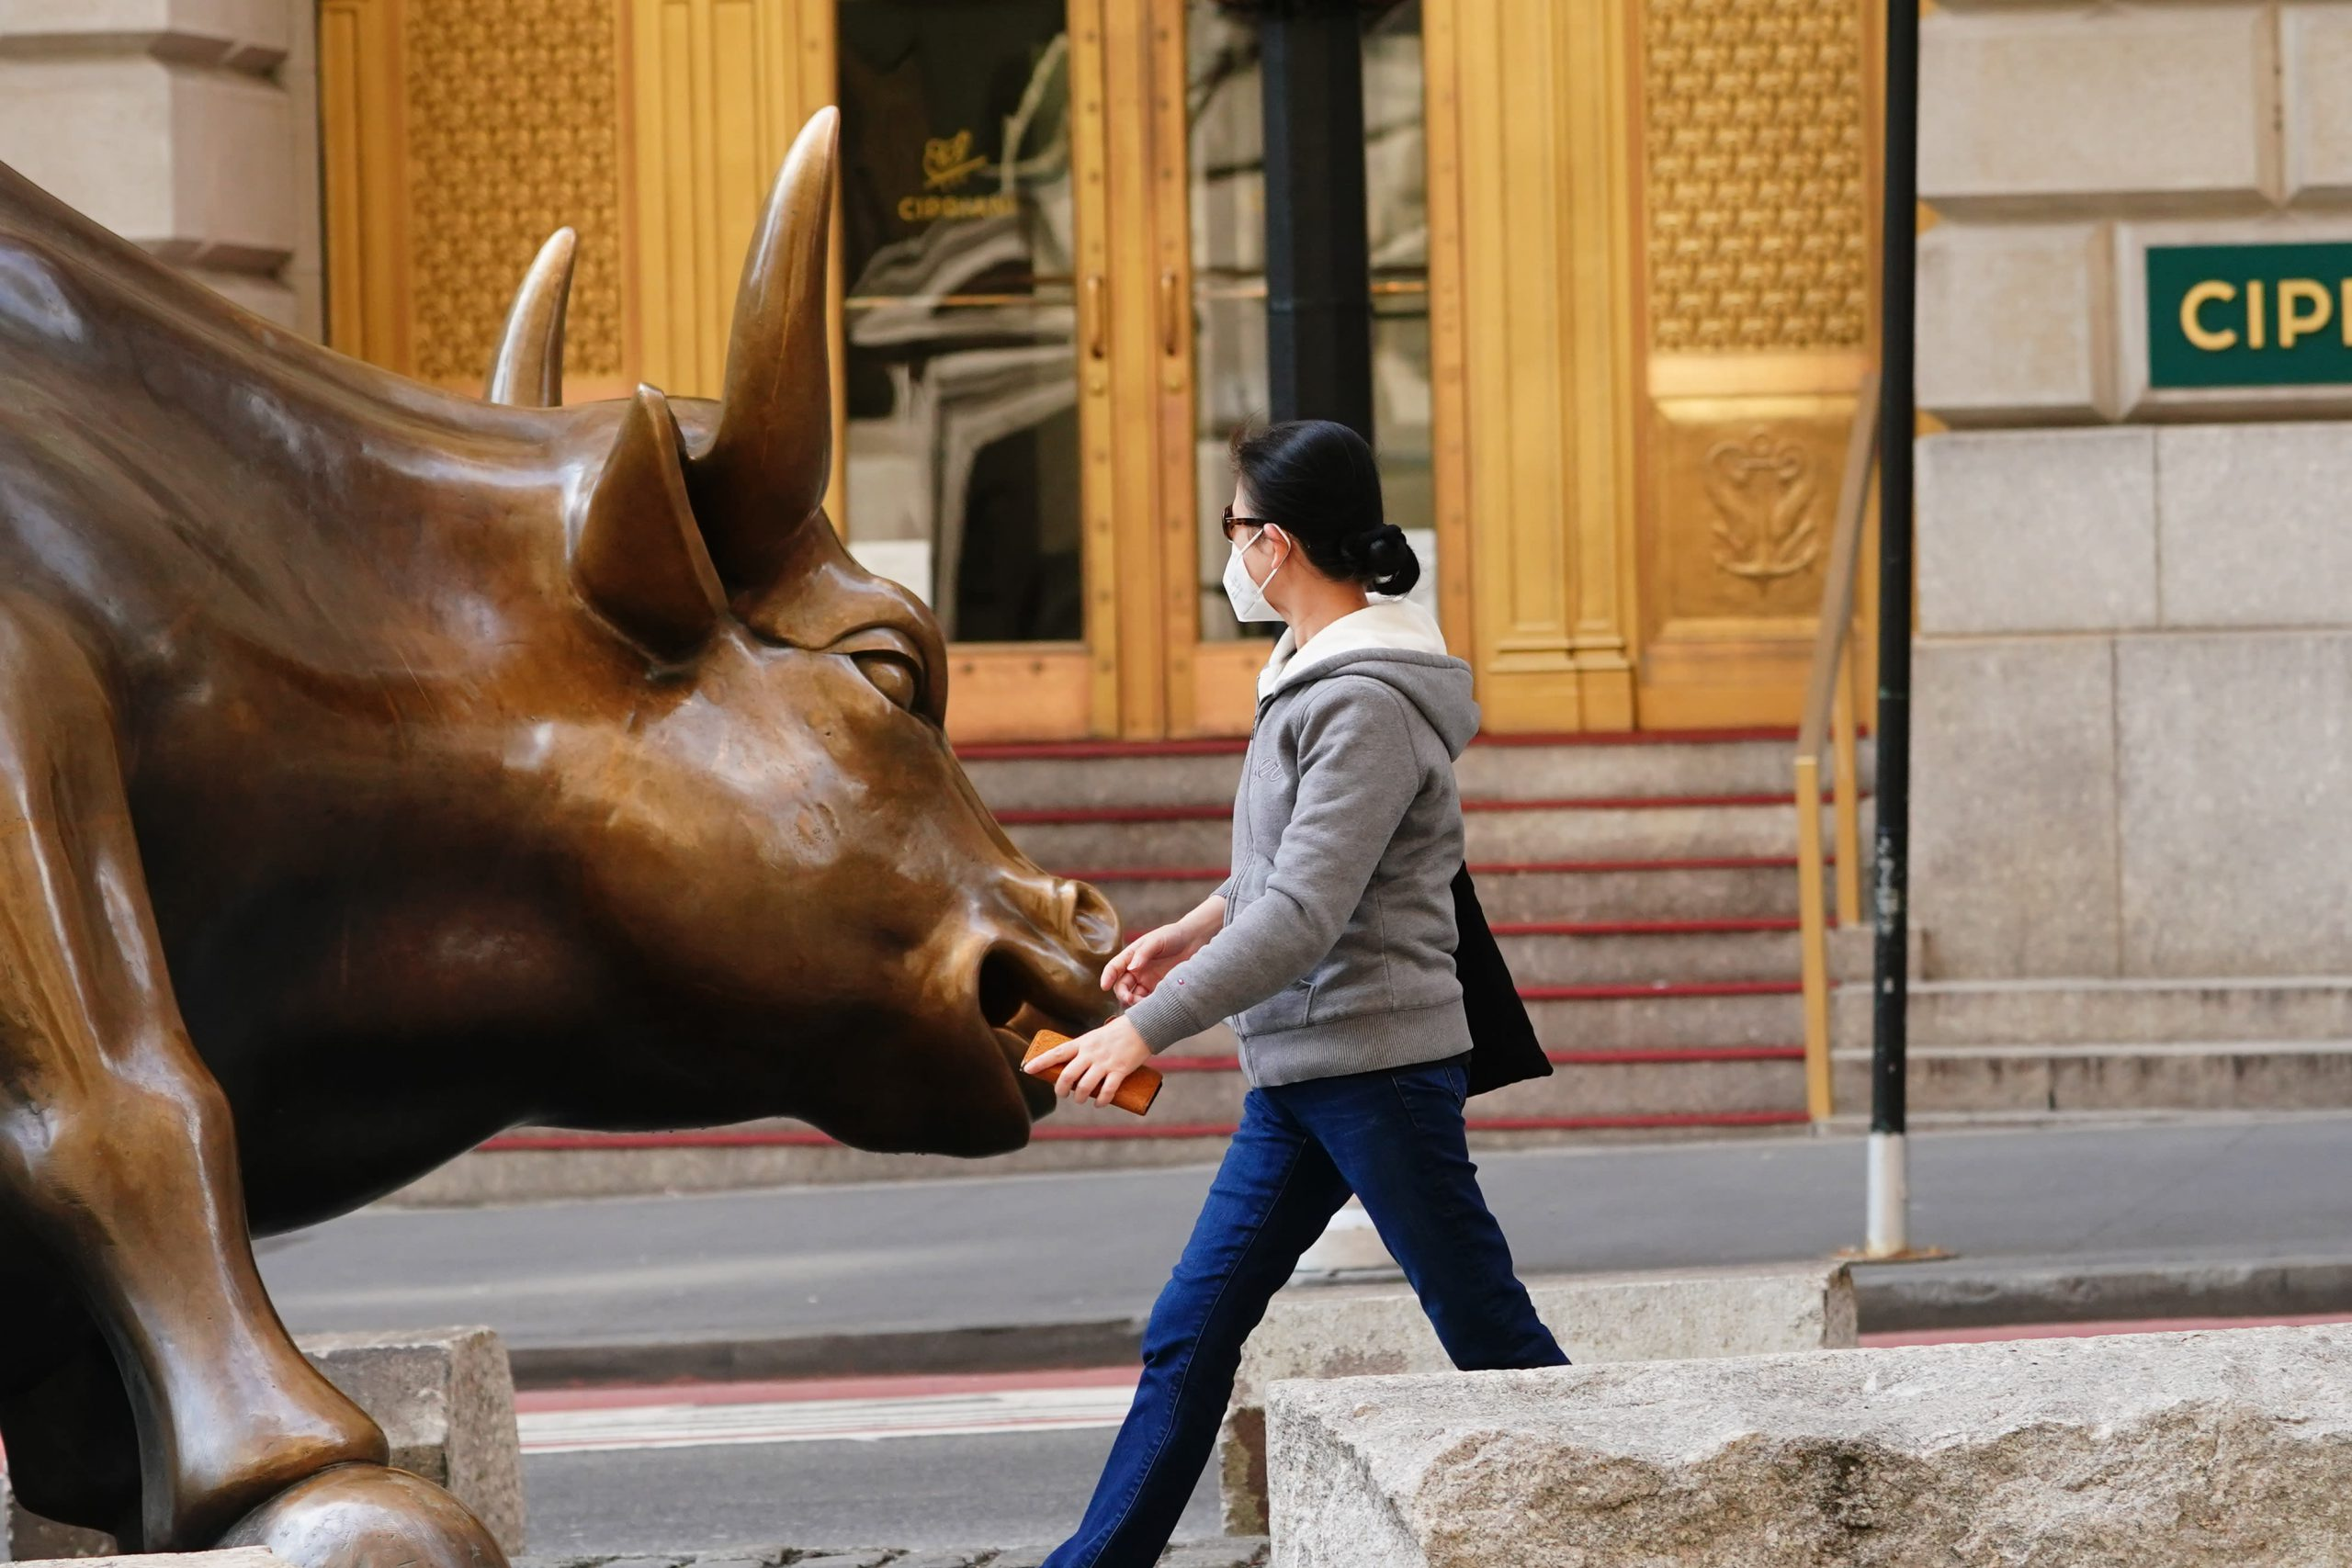 Green shoots: Wednesday was one of the most positive days for the stock market on many fronts